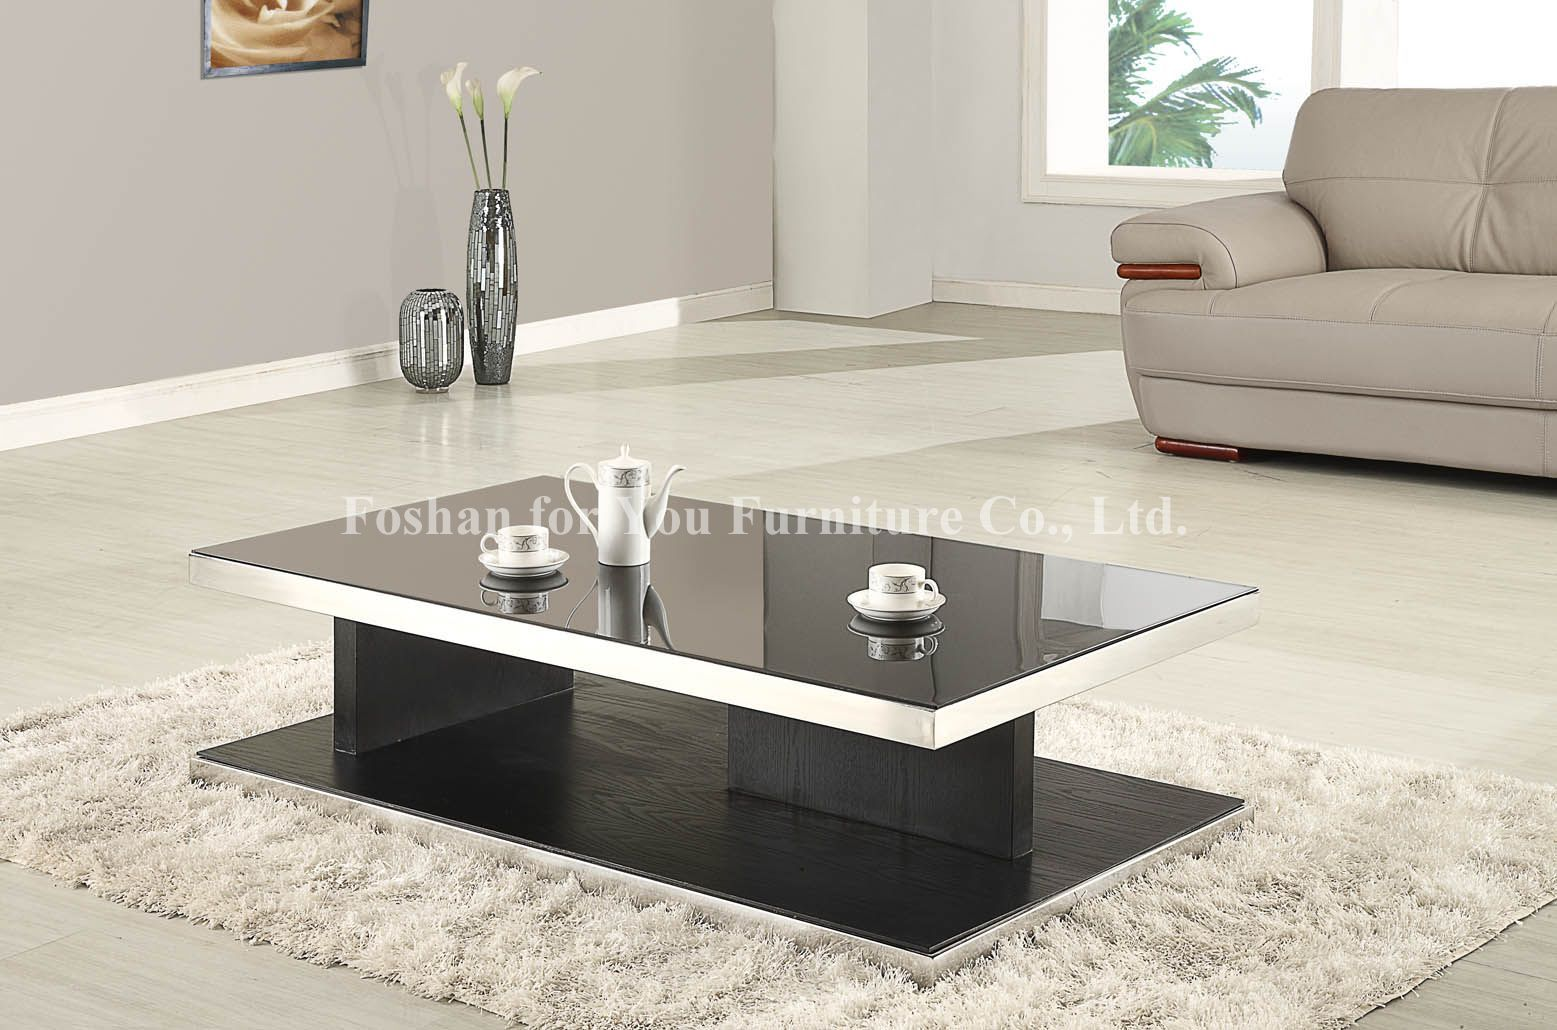 Living Room Table Design Fresh On Popular Coffee Tables Glass Gvorsmt Center Table Living Room Coffee Table Living Room Table